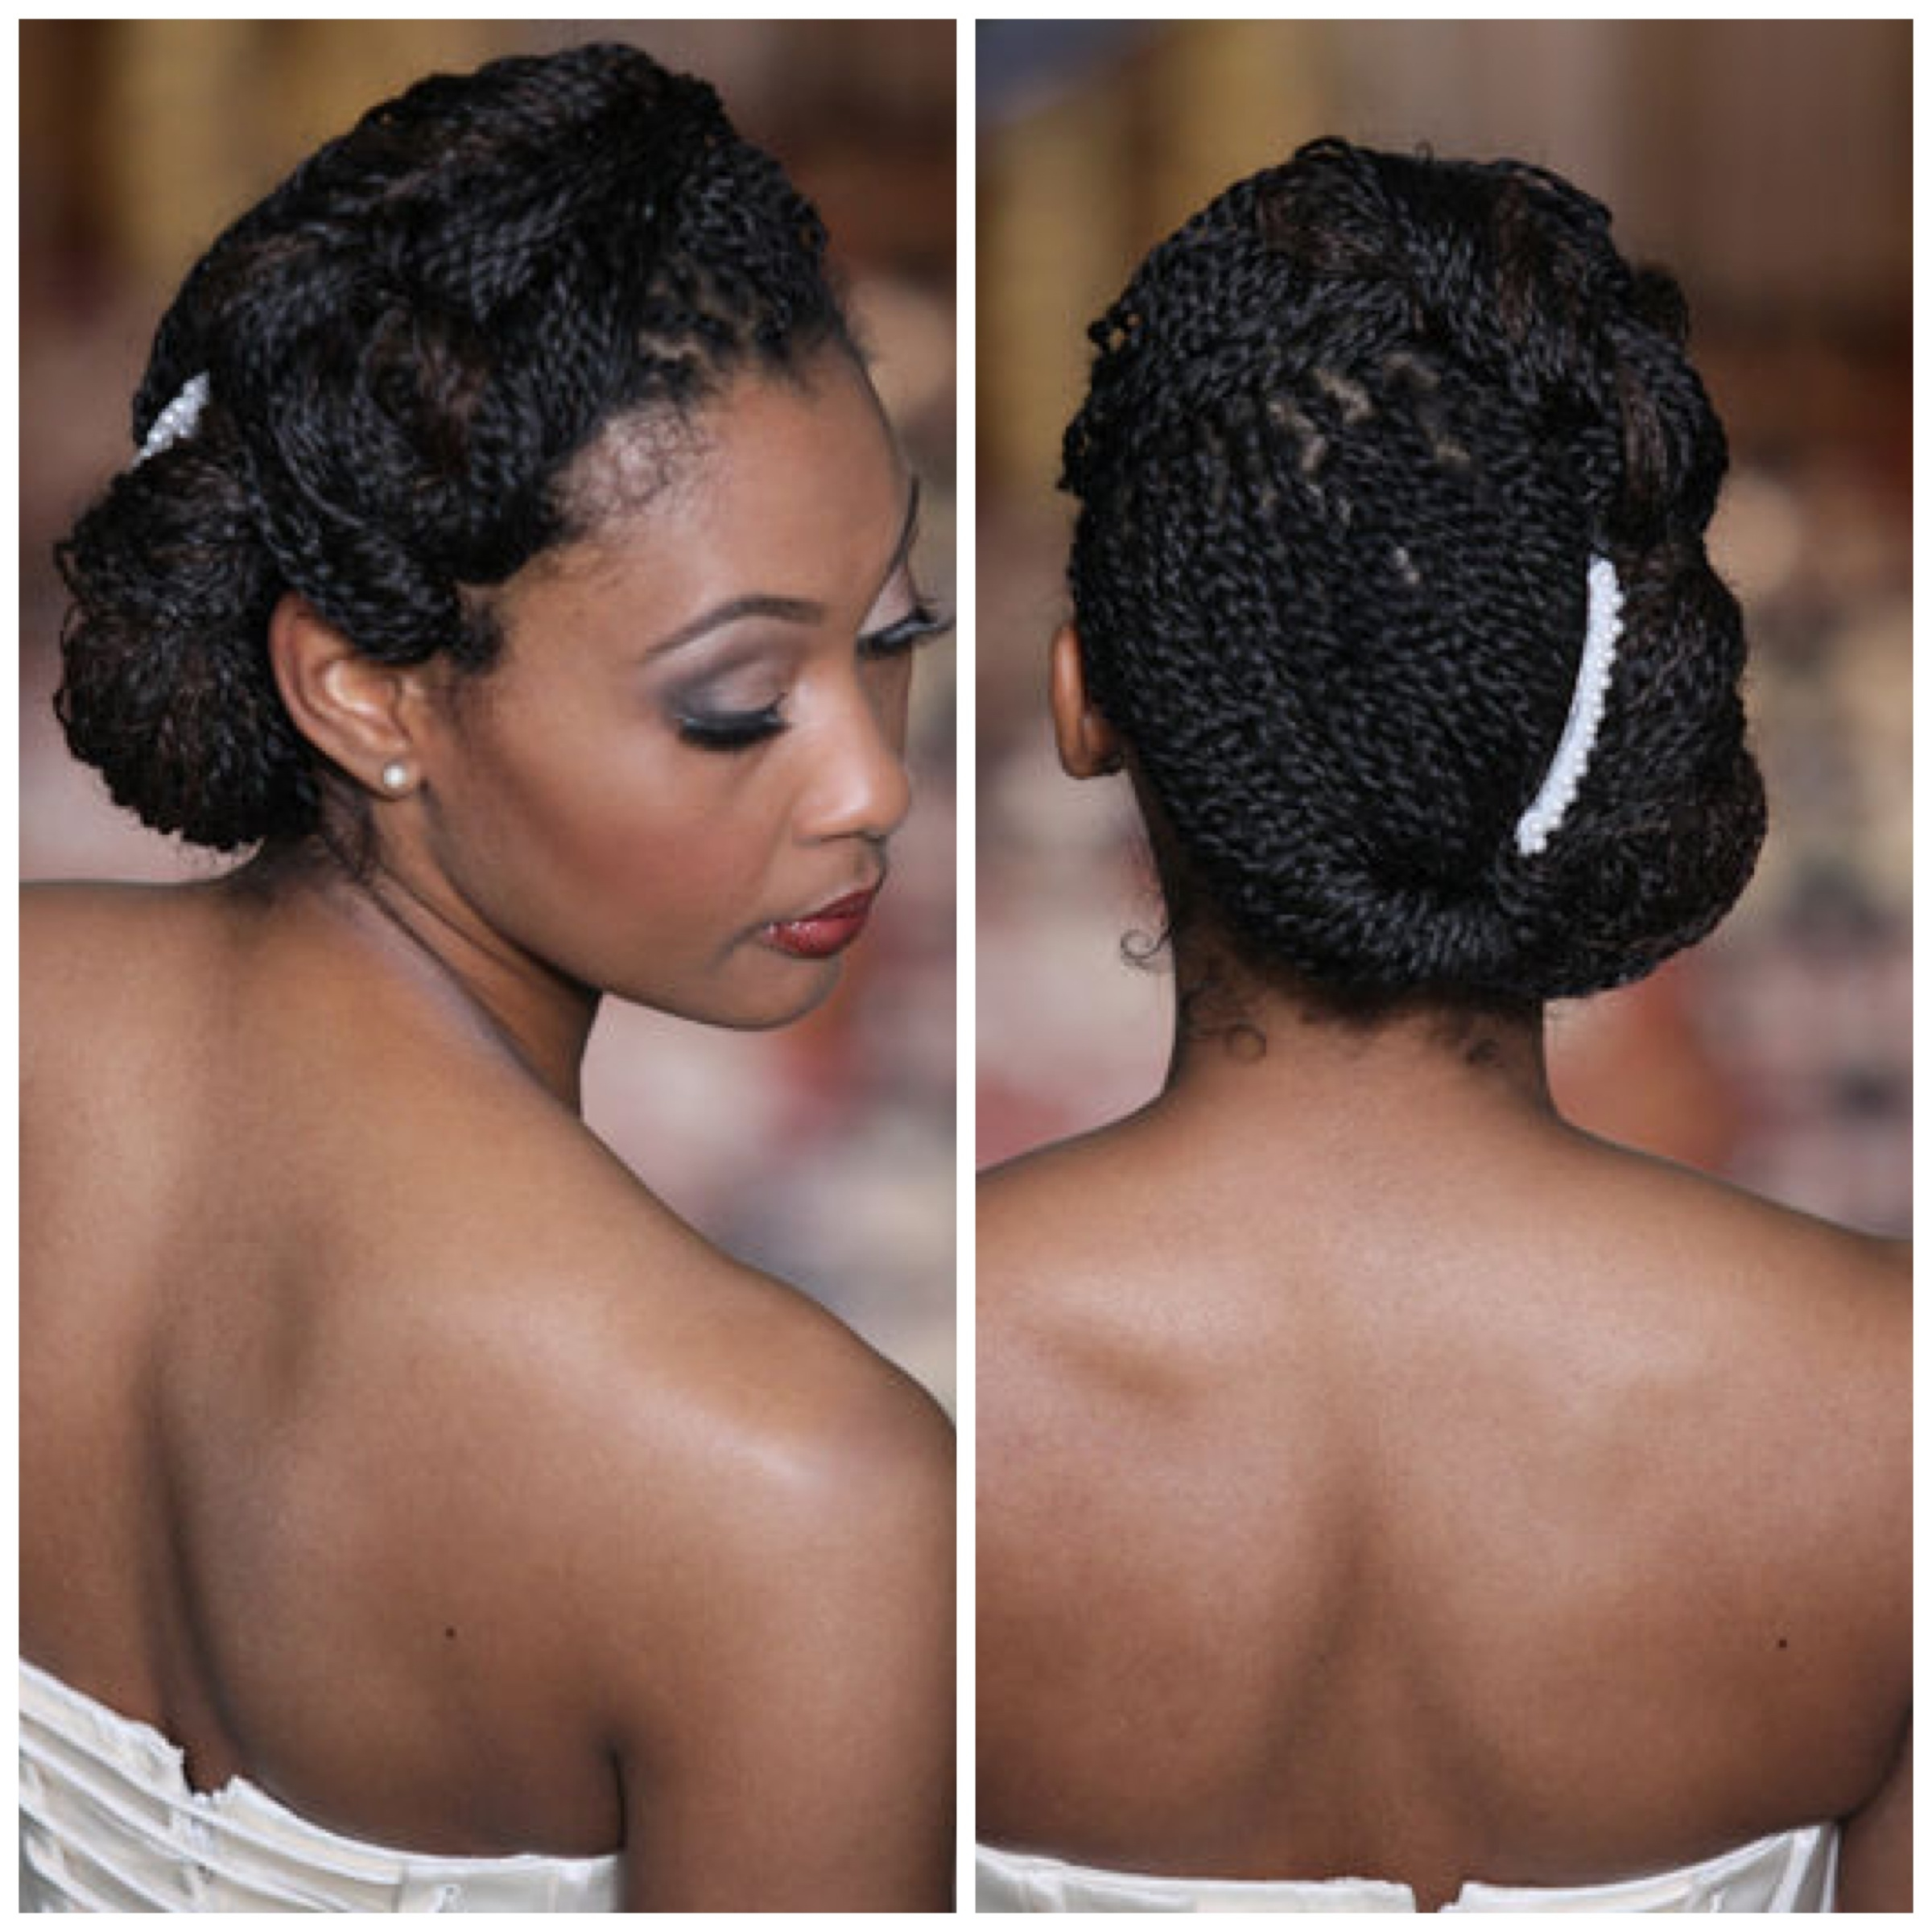 Tremendous Black Bridal Hairstyles With Braids Best Hairstyles 2017 Hairstyle Inspiration Daily Dogsangcom